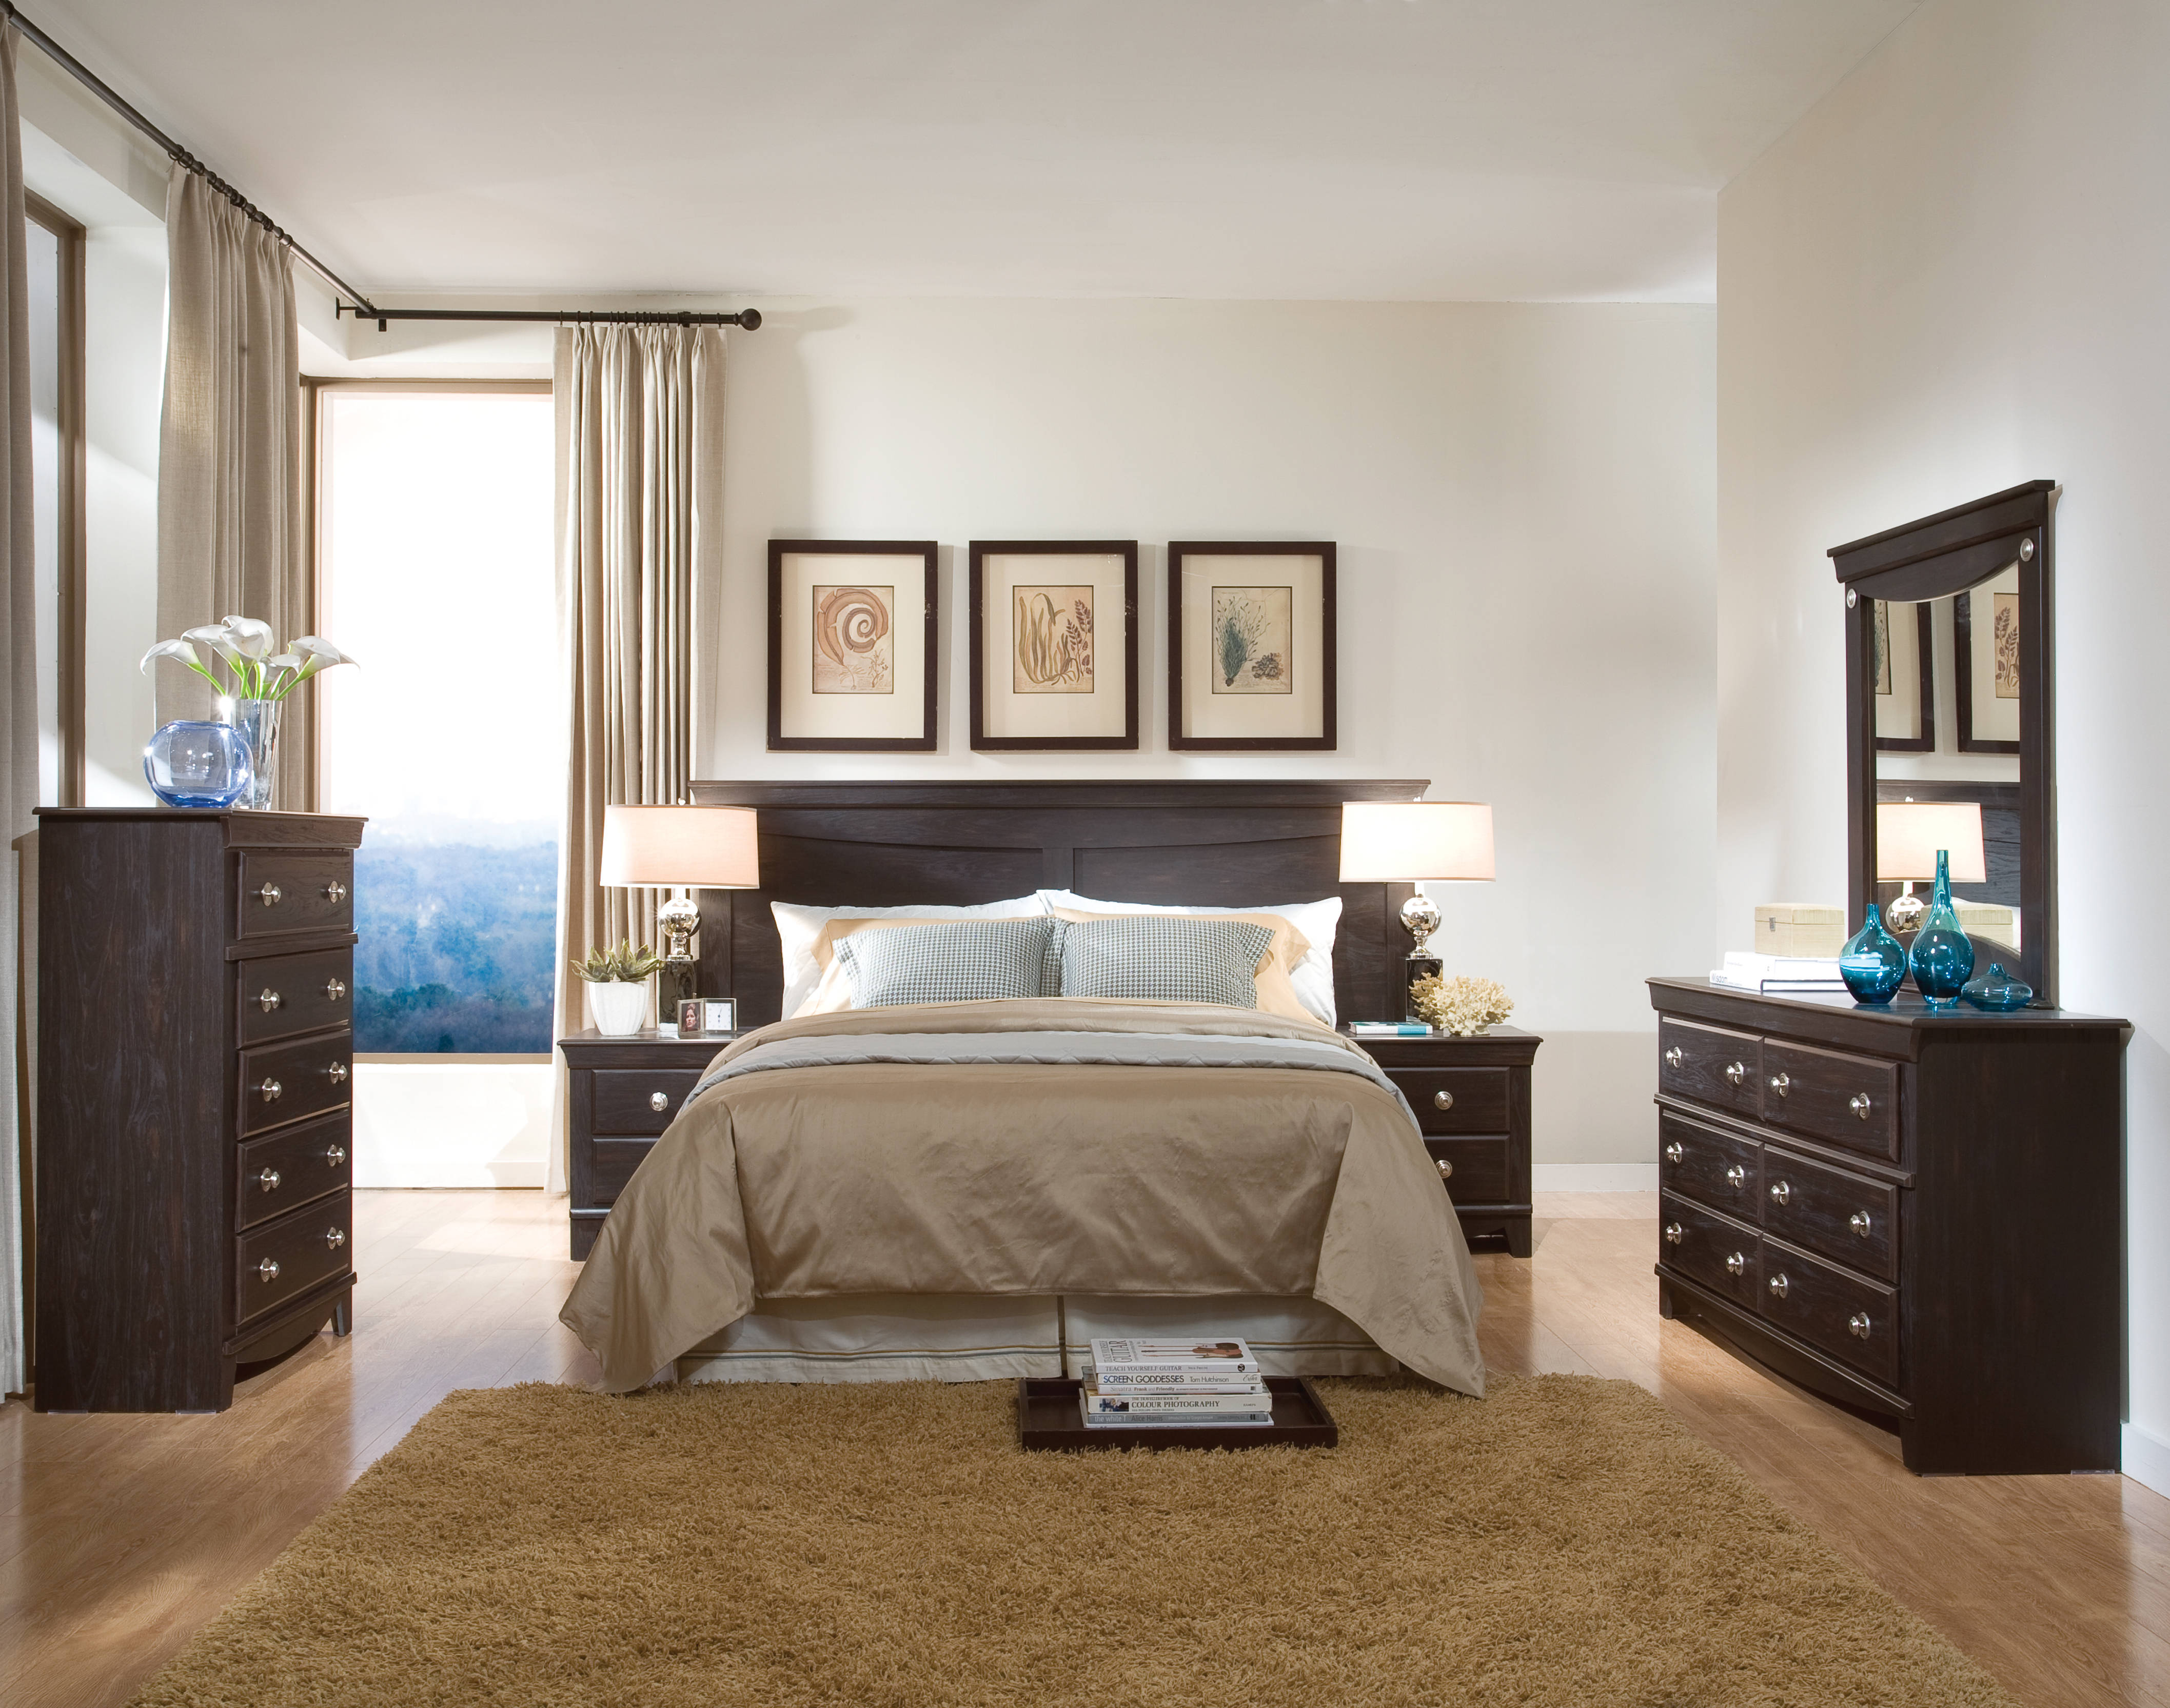 Standard Furniture Carlsbad Master Bedroom Set The Classy Home